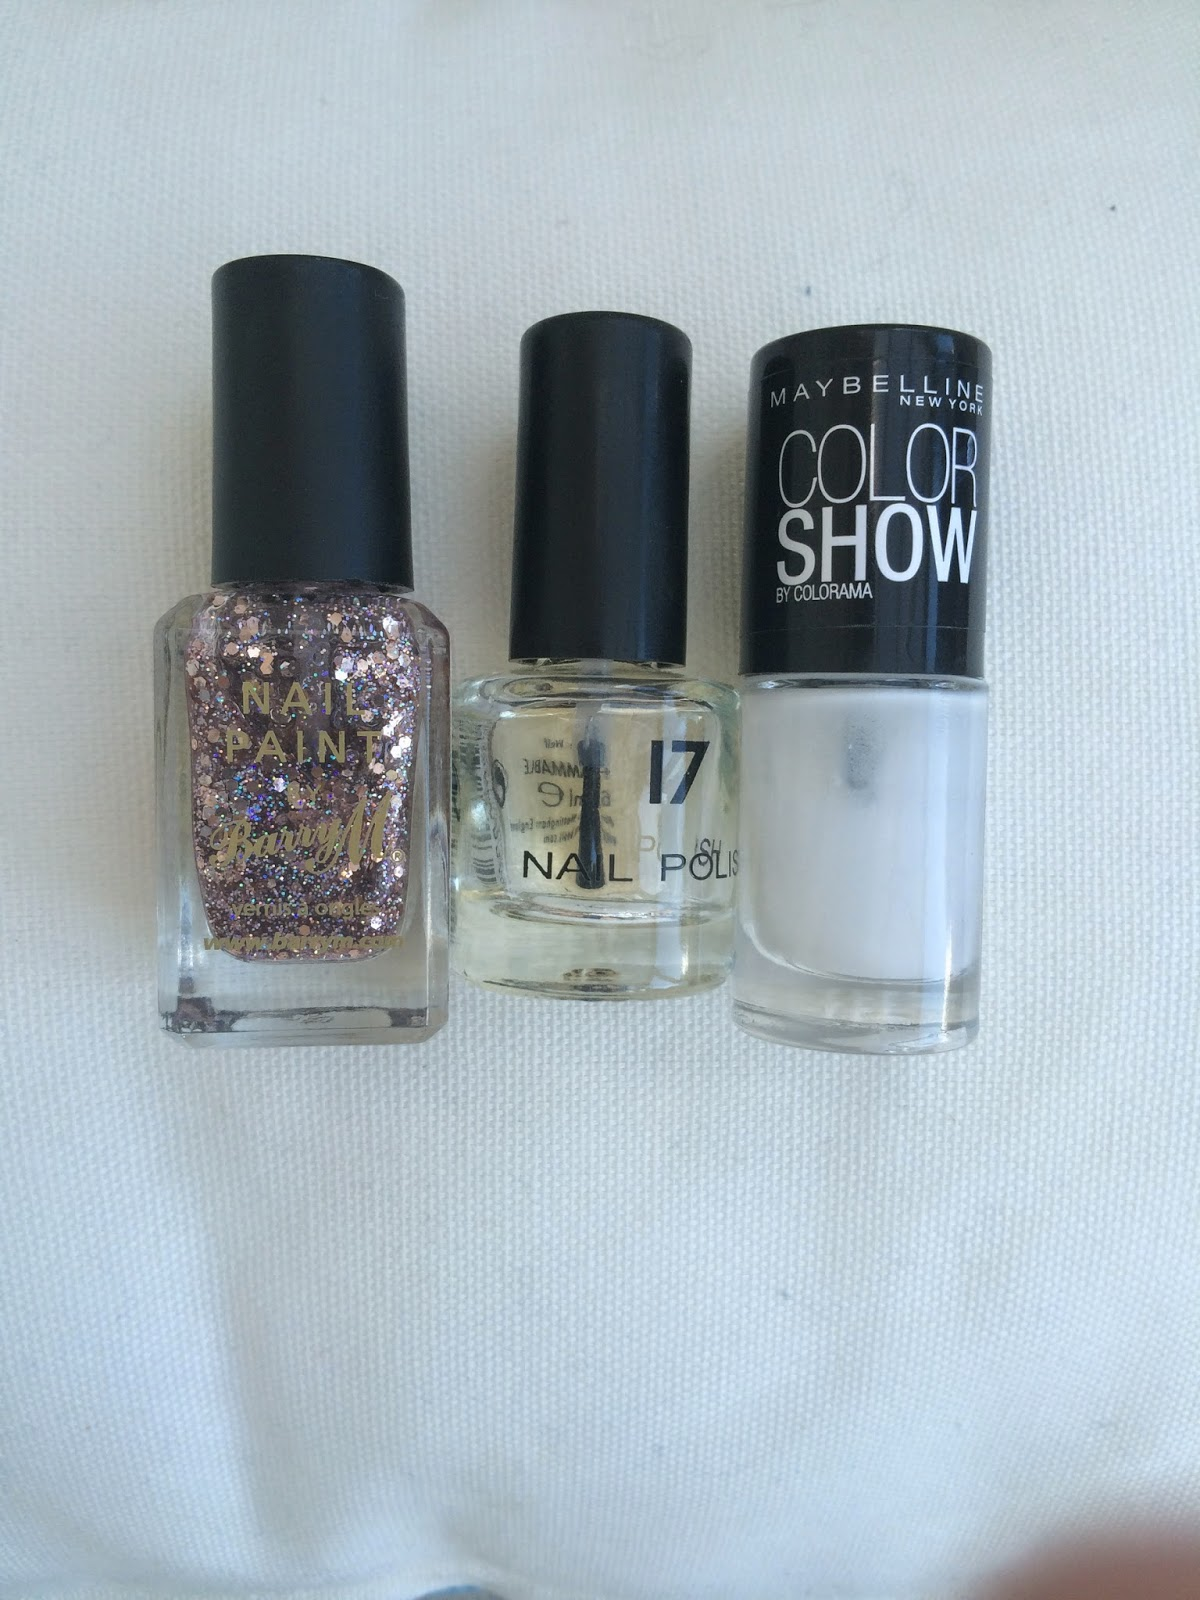 Nail Varnish Post on Lrsmth-Fashion fashion blog.